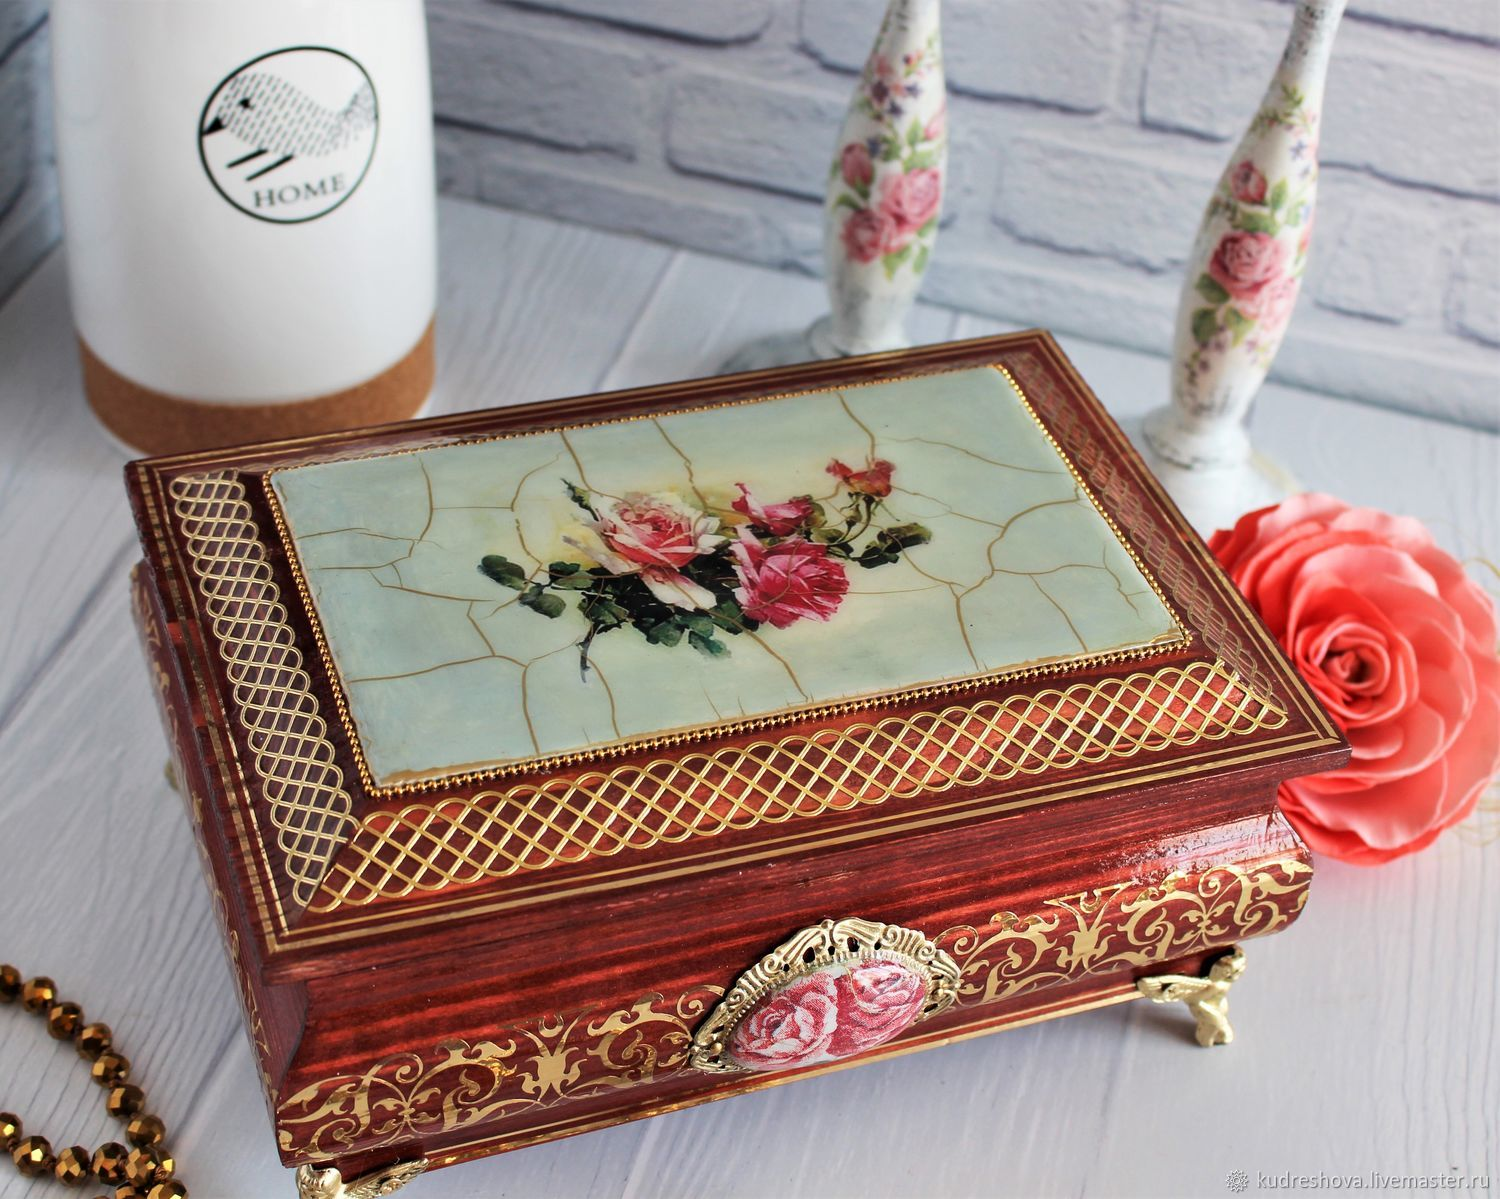 Jewelry box Roses, Box, Frolovo,  Фото №1